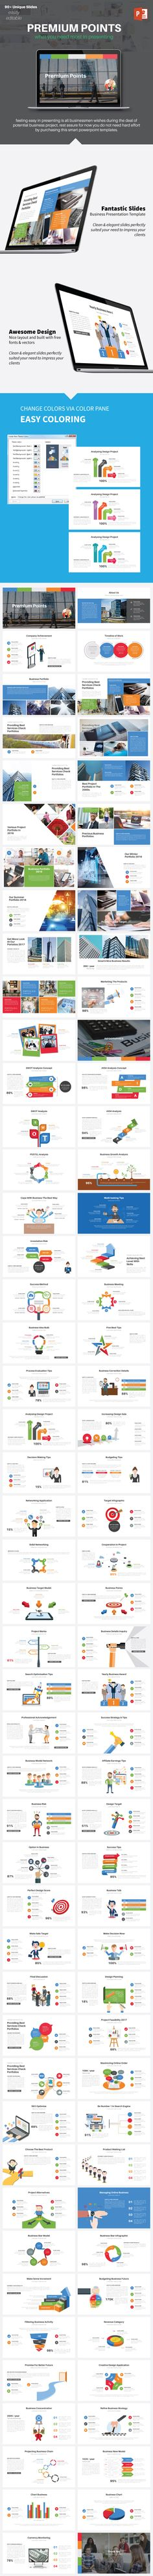 Premium Point Template By Wattcore On Graphicriver Presentation A New Fresh Clean Professional And Multipurpose